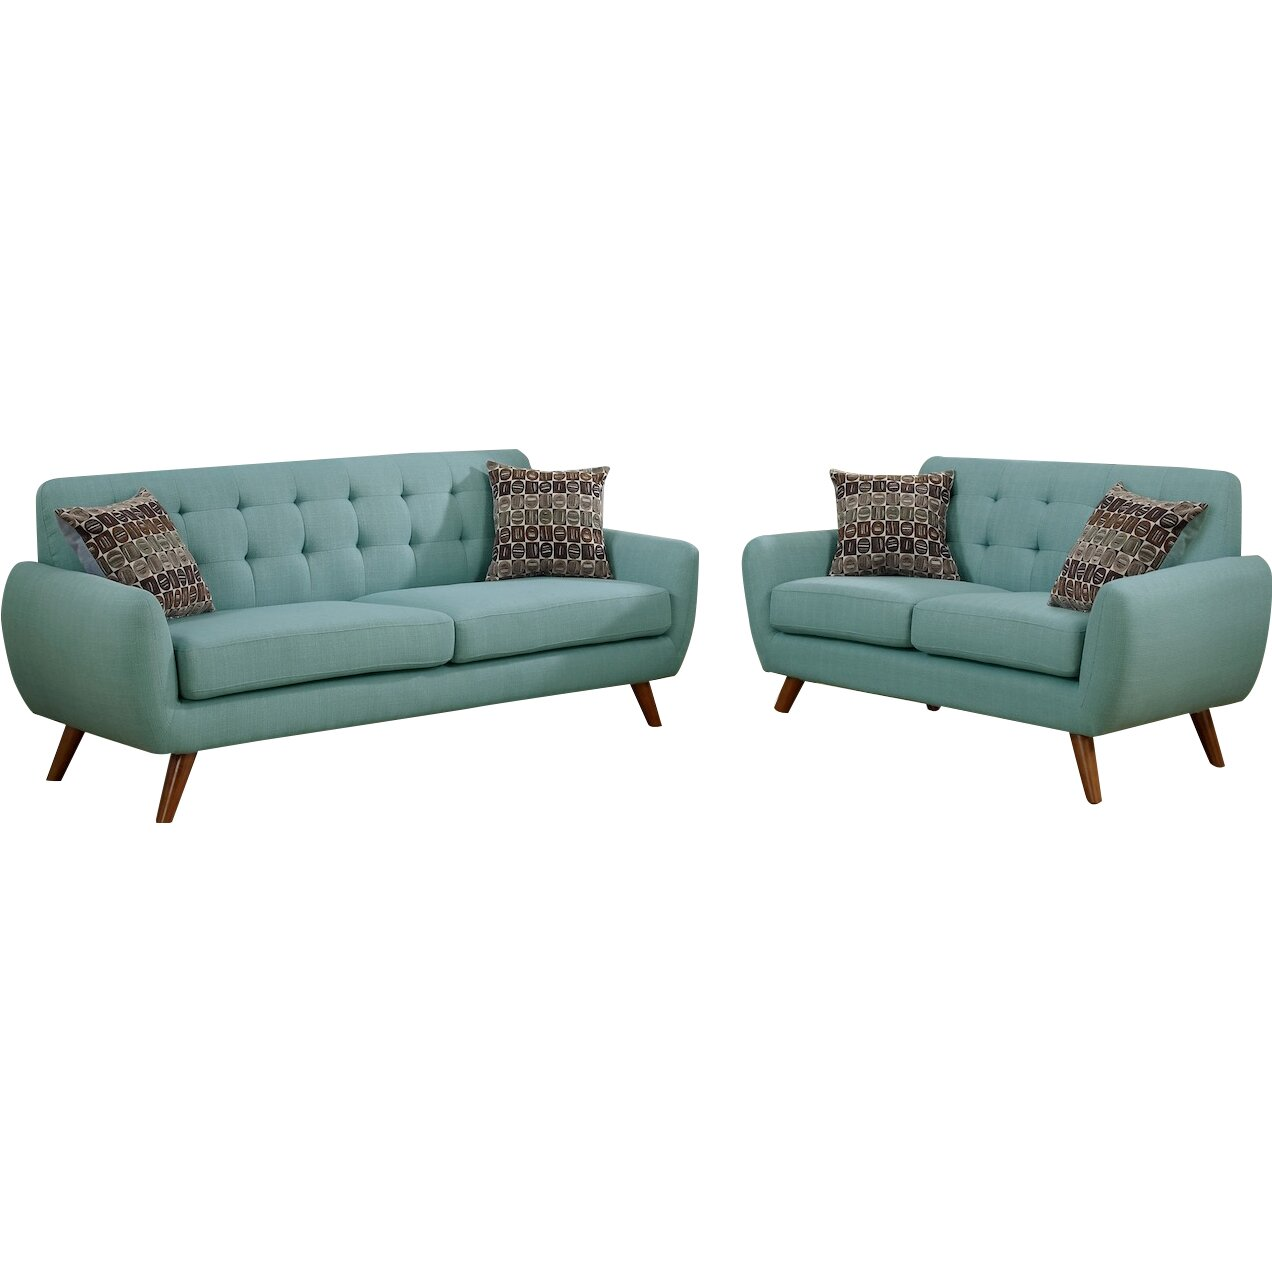 Infini furnishings modern retro sofa and loveseat reviews wayfair Sofa loveseat